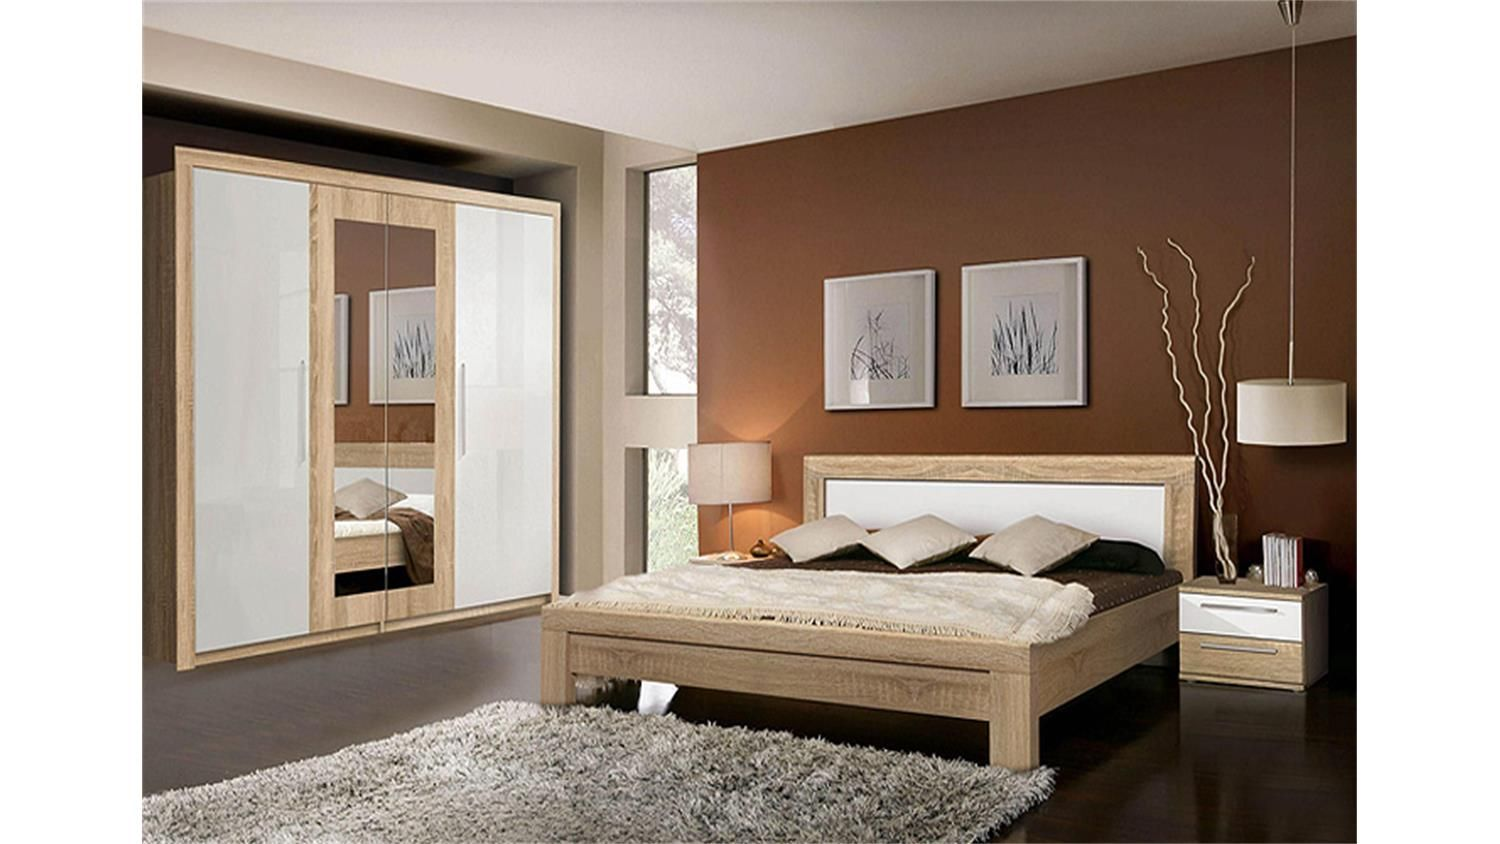 otto schlafzimmer set rauch ikea begehbare kleiderschr nke bettw sche kreise schlafzimmer. Black Bedroom Furniture Sets. Home Design Ideas